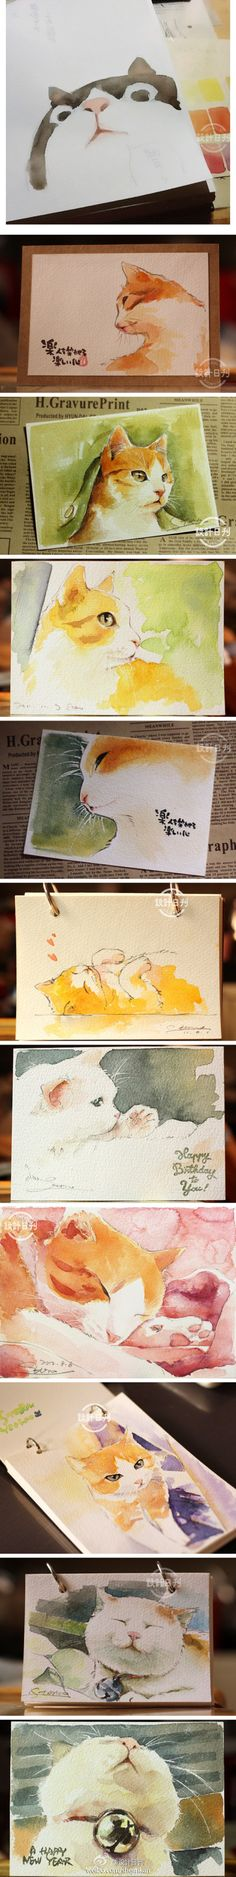 I'd hang these all over my house adorable                                                                                                                                                                                 More #CatWatercolor